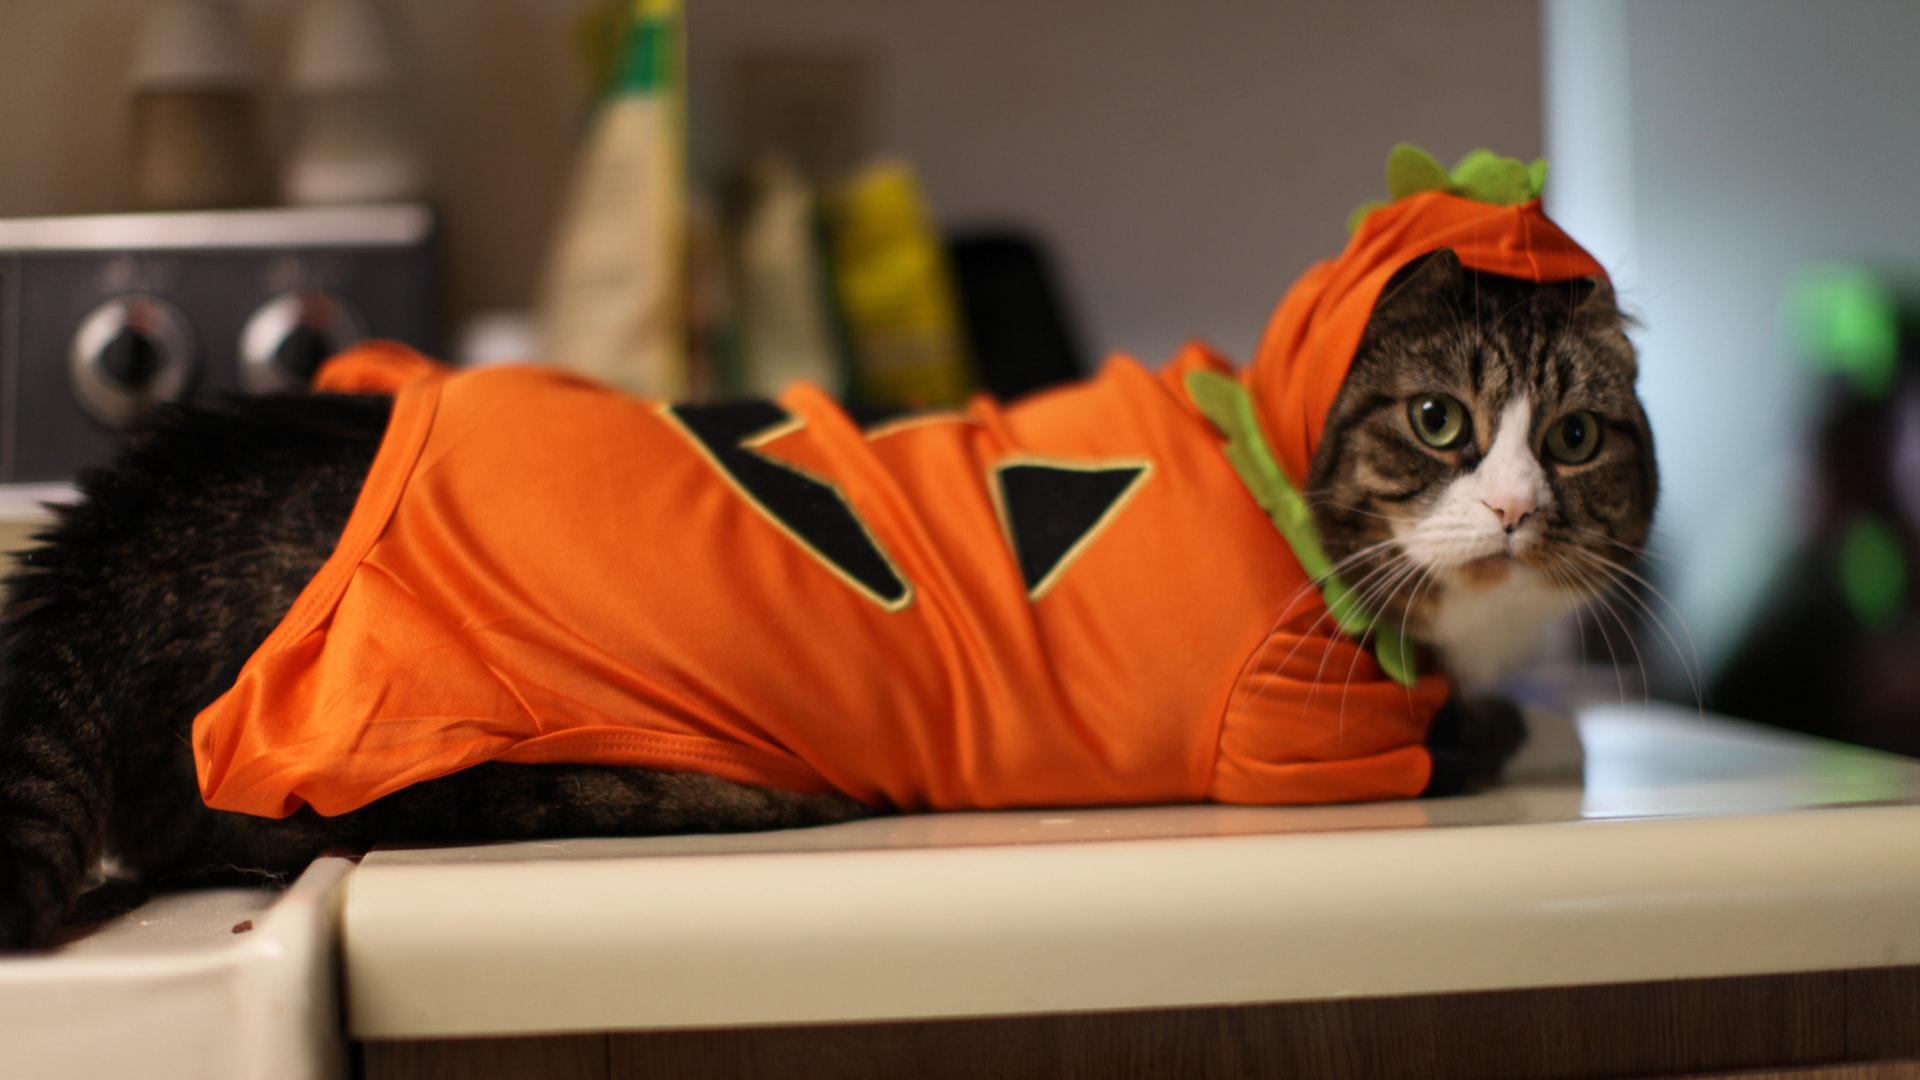 78 Cats in Halloween Costumes - Purrfect Love